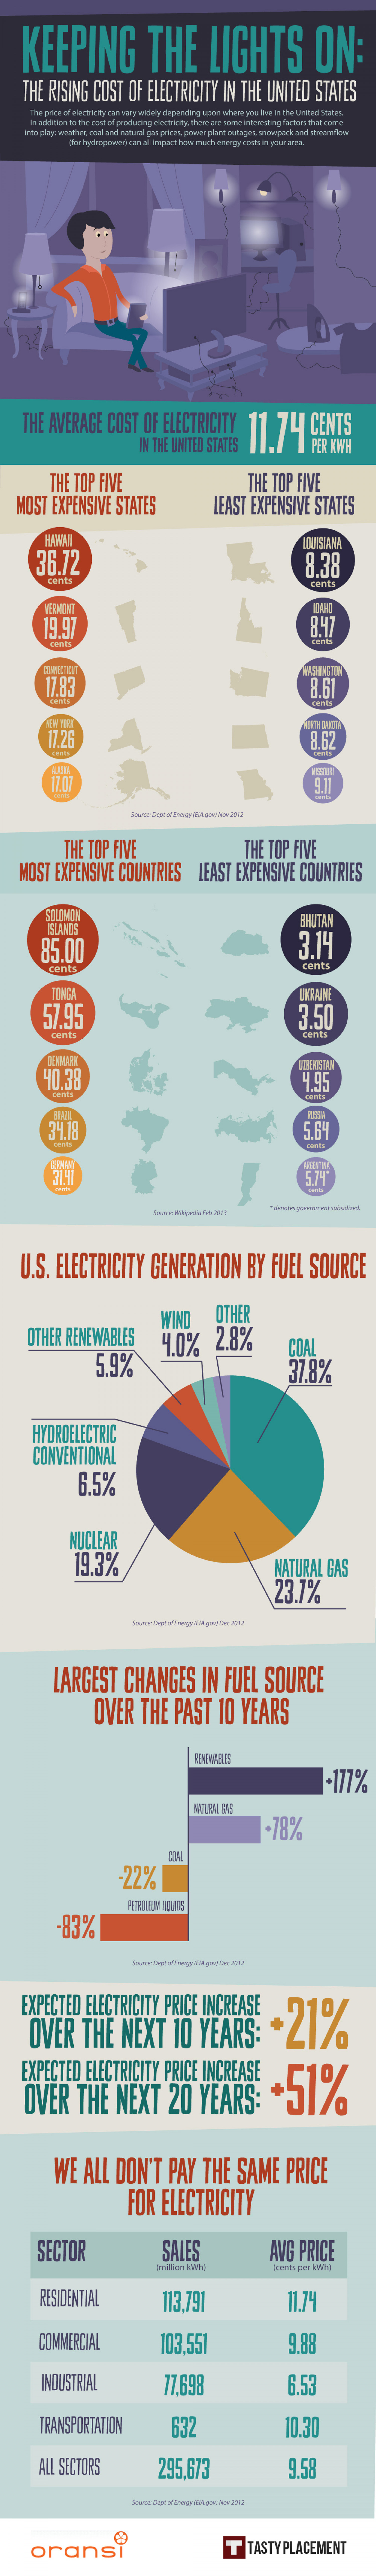 Keeping the Lights On: The Rising Cost of Electricity in the United States Infographic